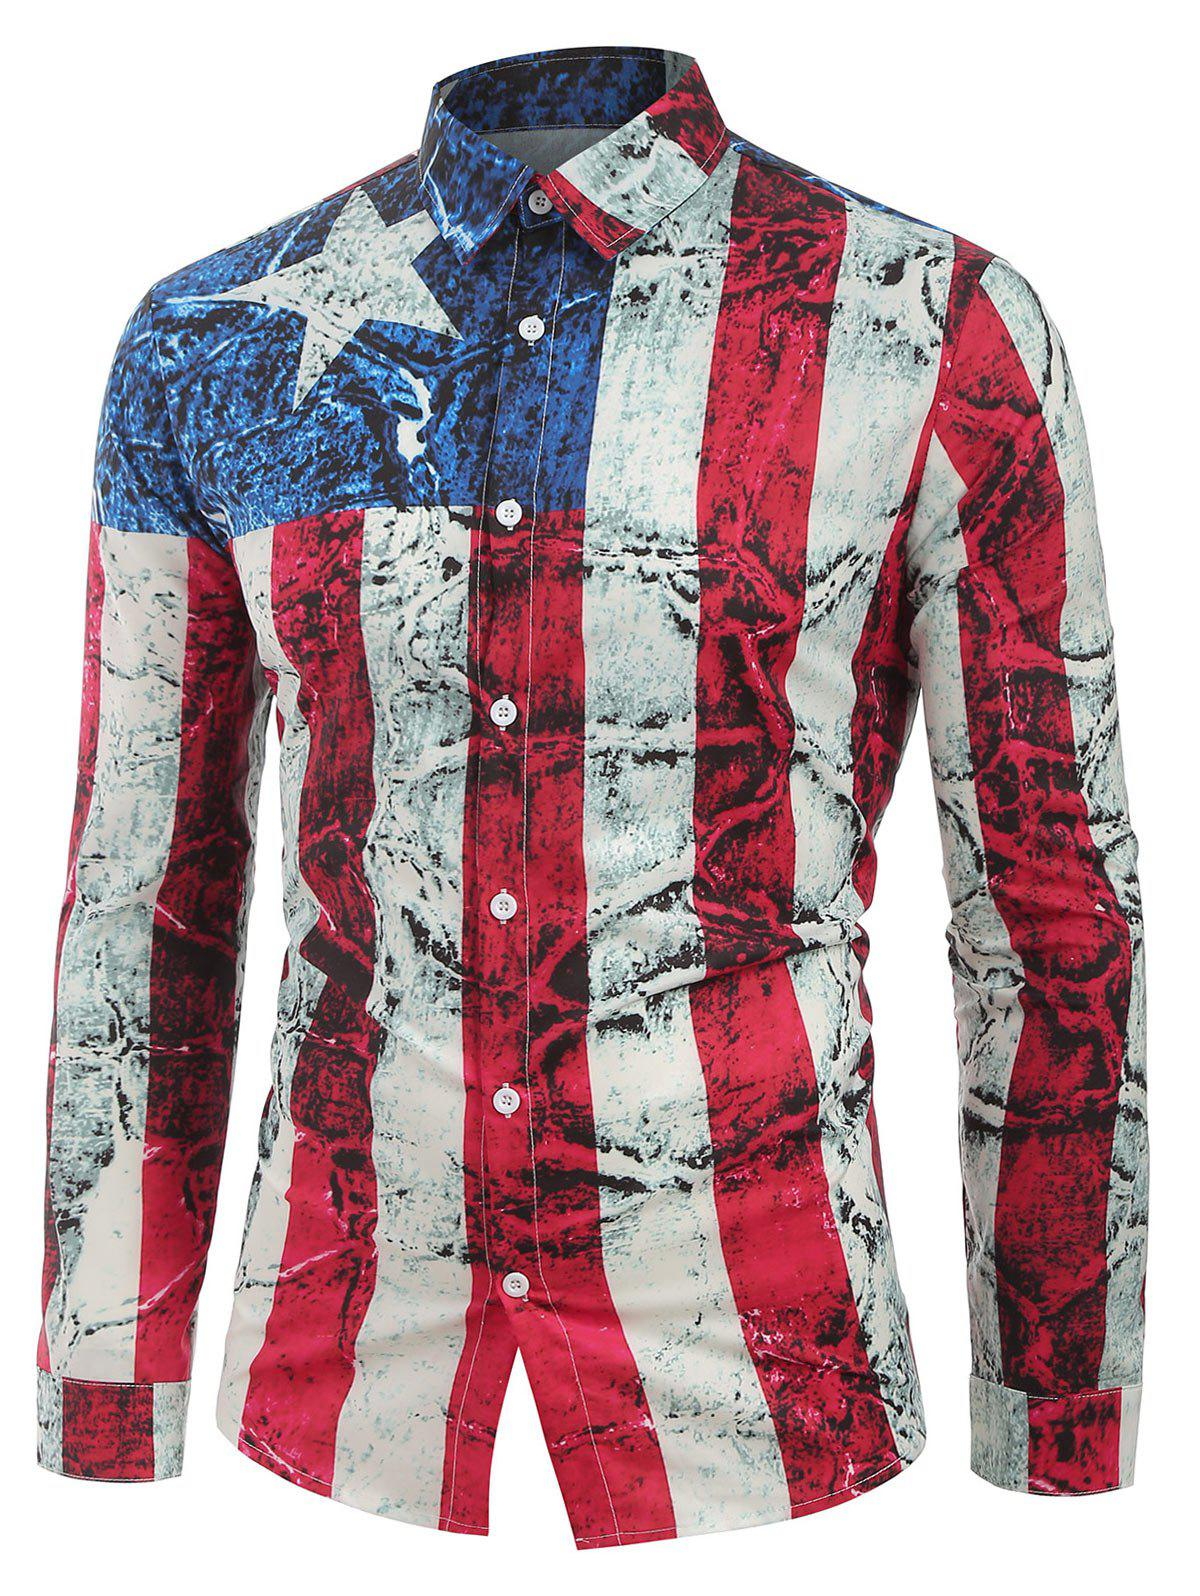 Online Long Sleeves Distressed American Flag Print Button Shirt